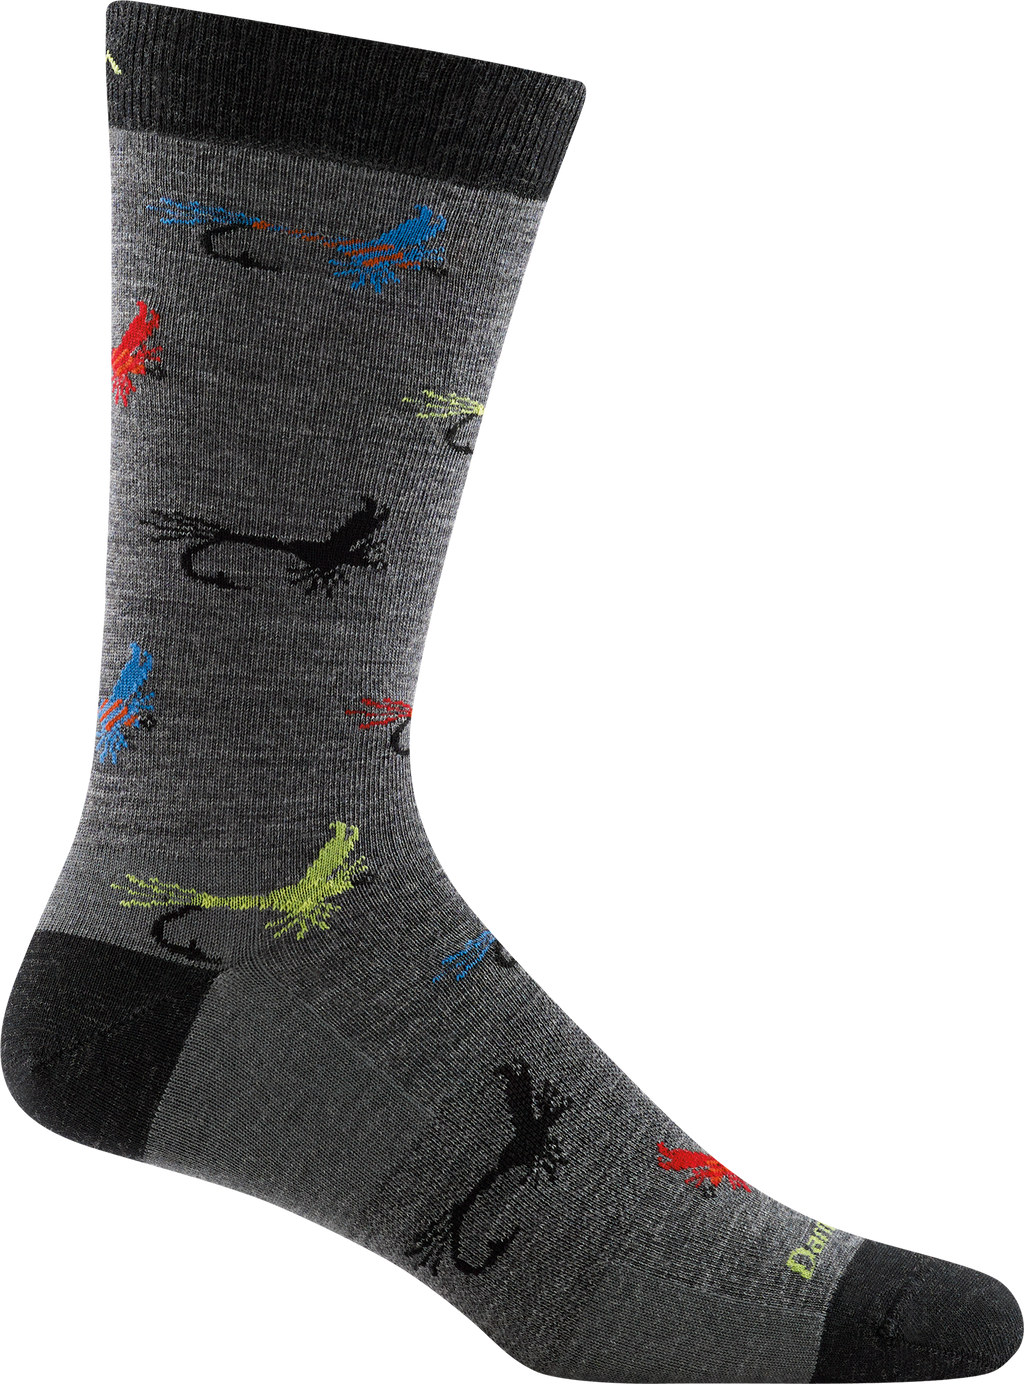 fishing flies design sock